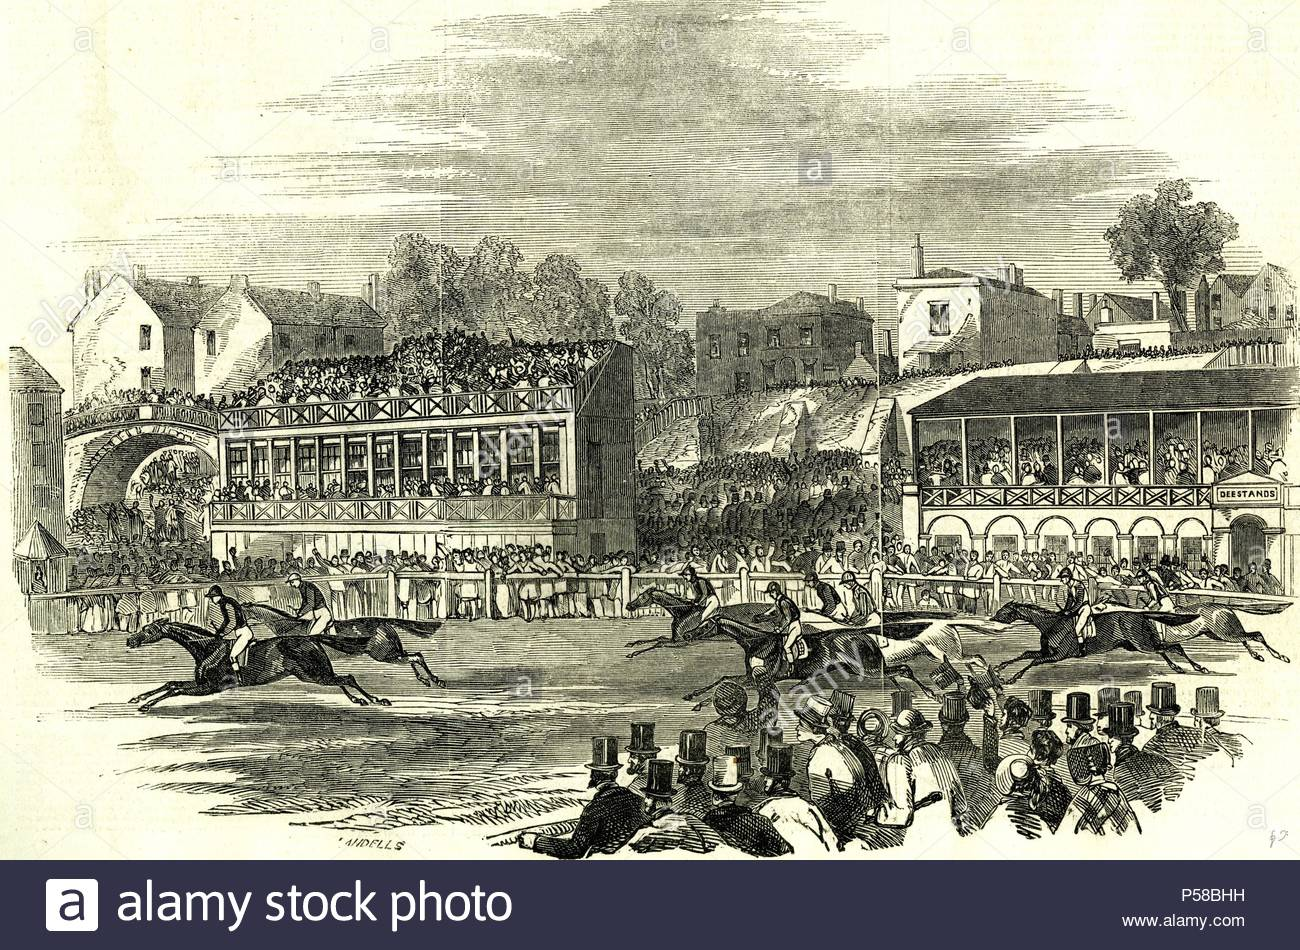 Chester, U.K., 1846, Chester races. The race for the Cup. - Stock Image